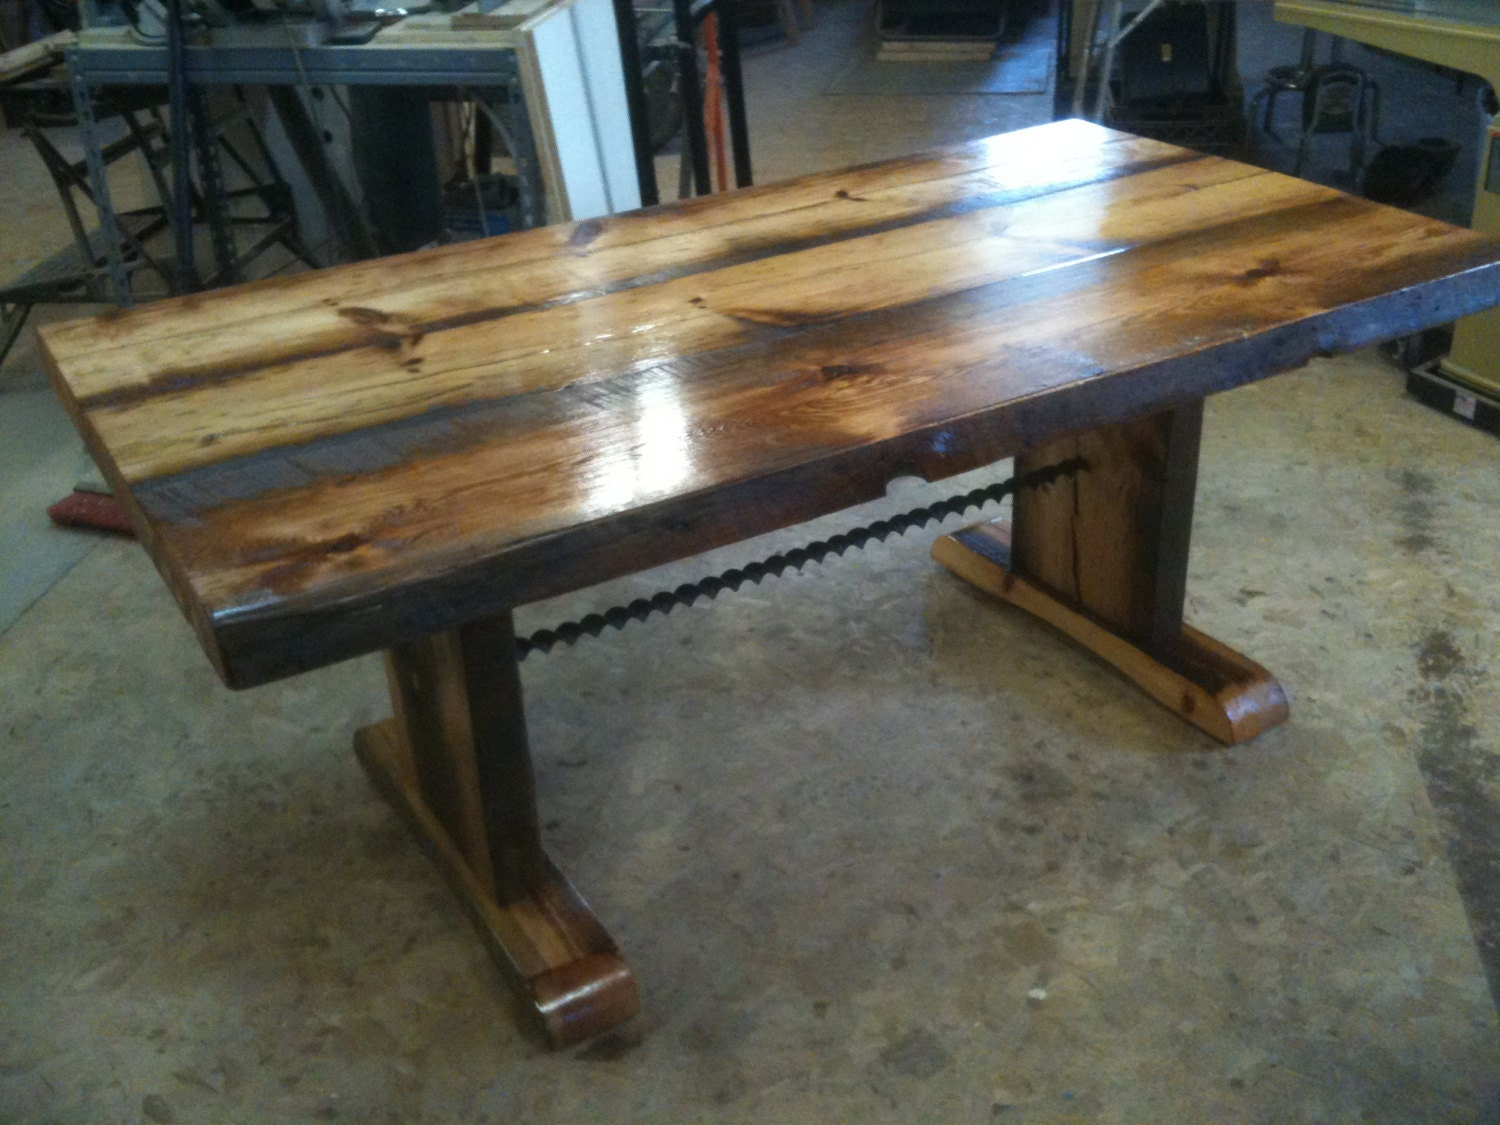 Reclaimed Barnwood Dining Table with Bench : ilfullxfull8886133351o61 from www.etsy.com size 1500 x 1125 jpeg 309kB